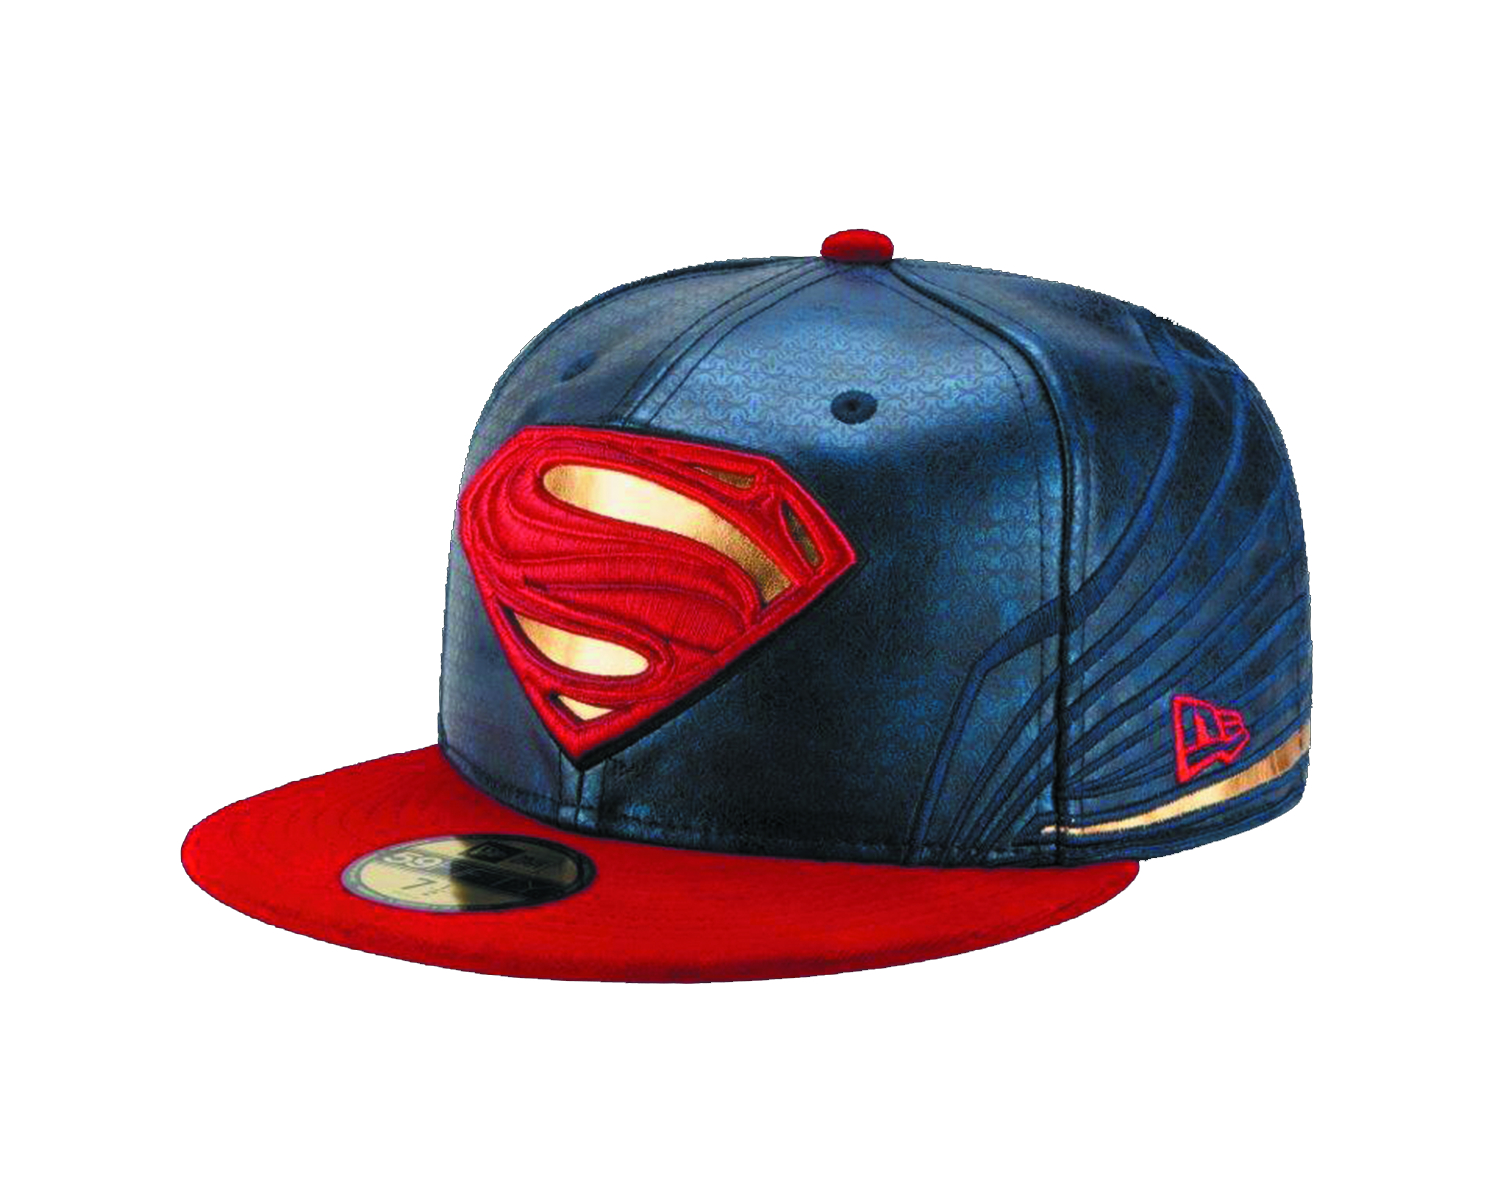 BATMAN V SUPERMAN ARMOR SUPERMAN FITTED CAP SZ 7 1/2